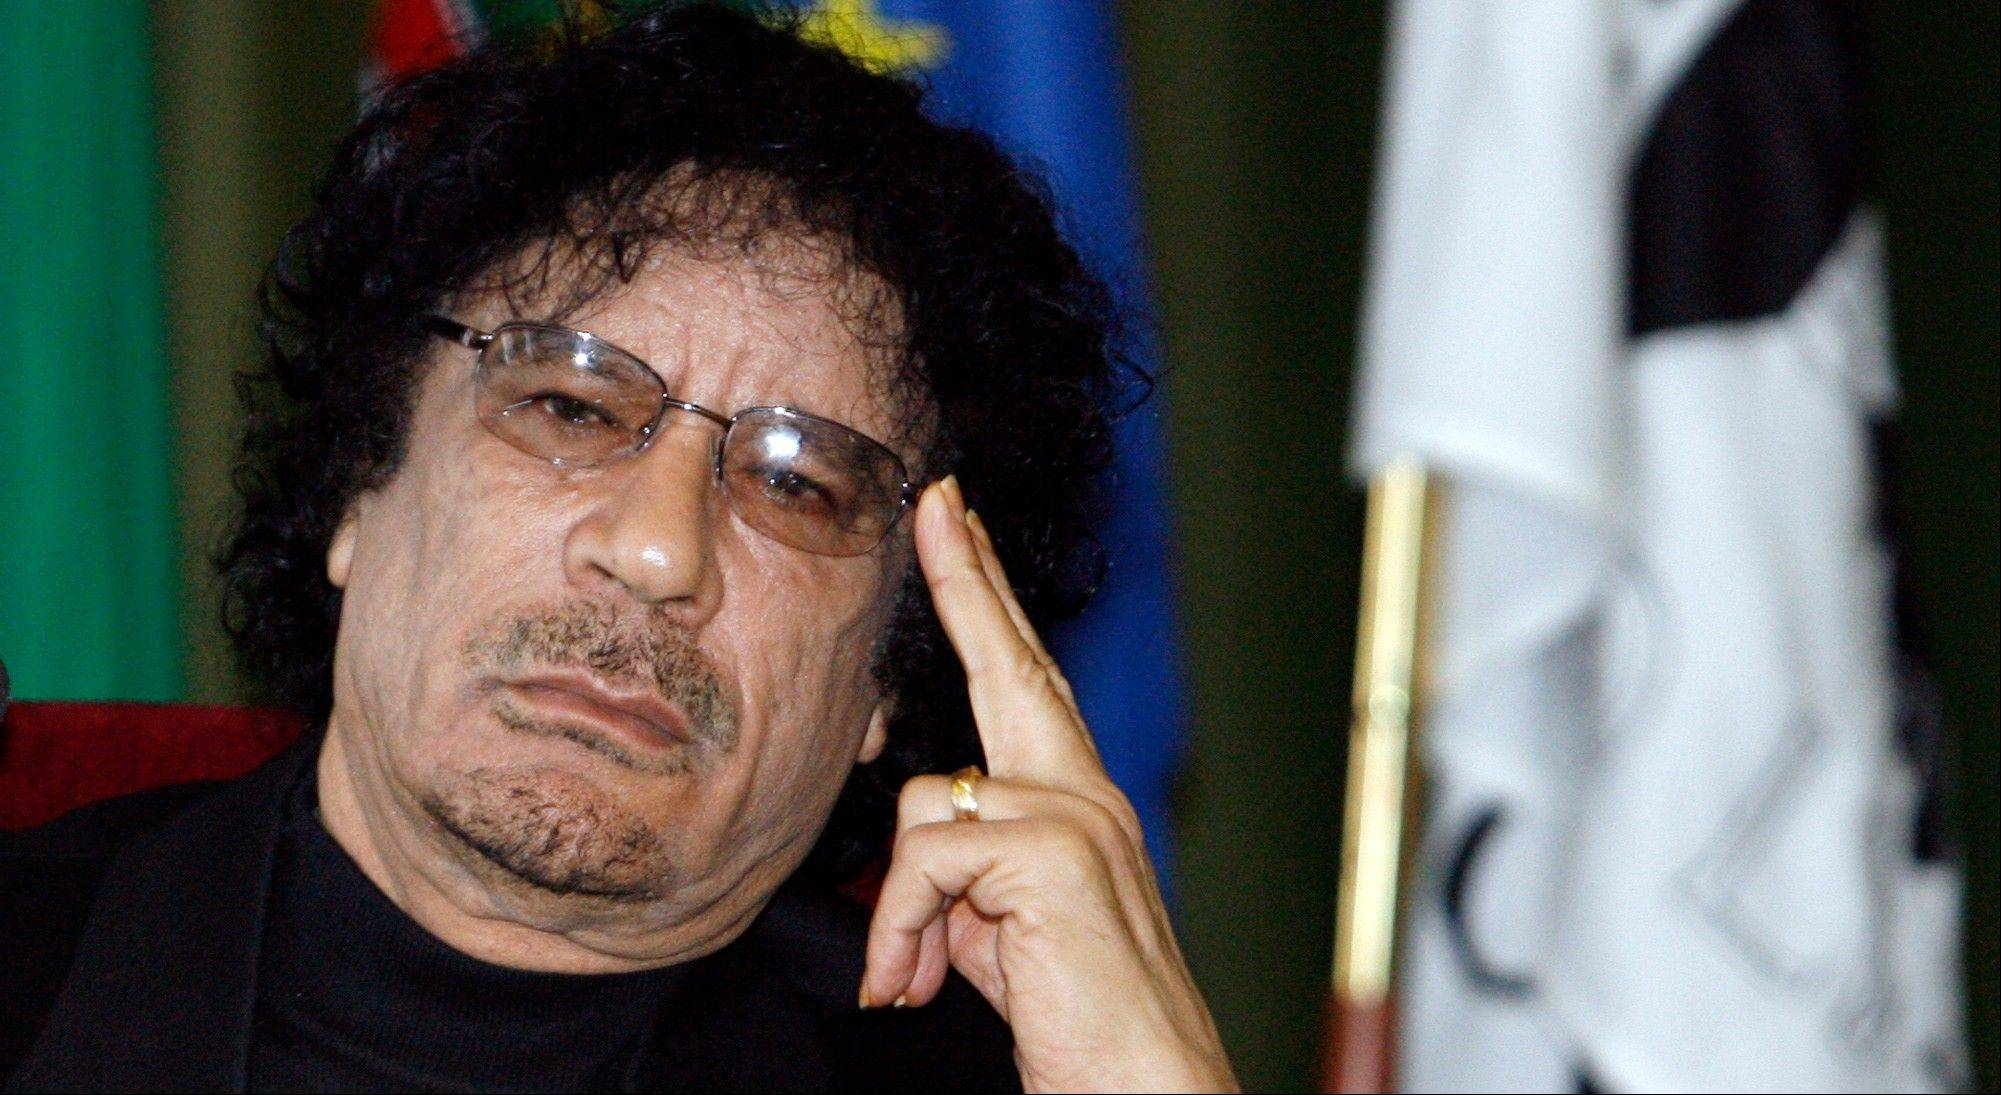 The whereabouts of Libyan leader Moammar Gadhafi are unknown.